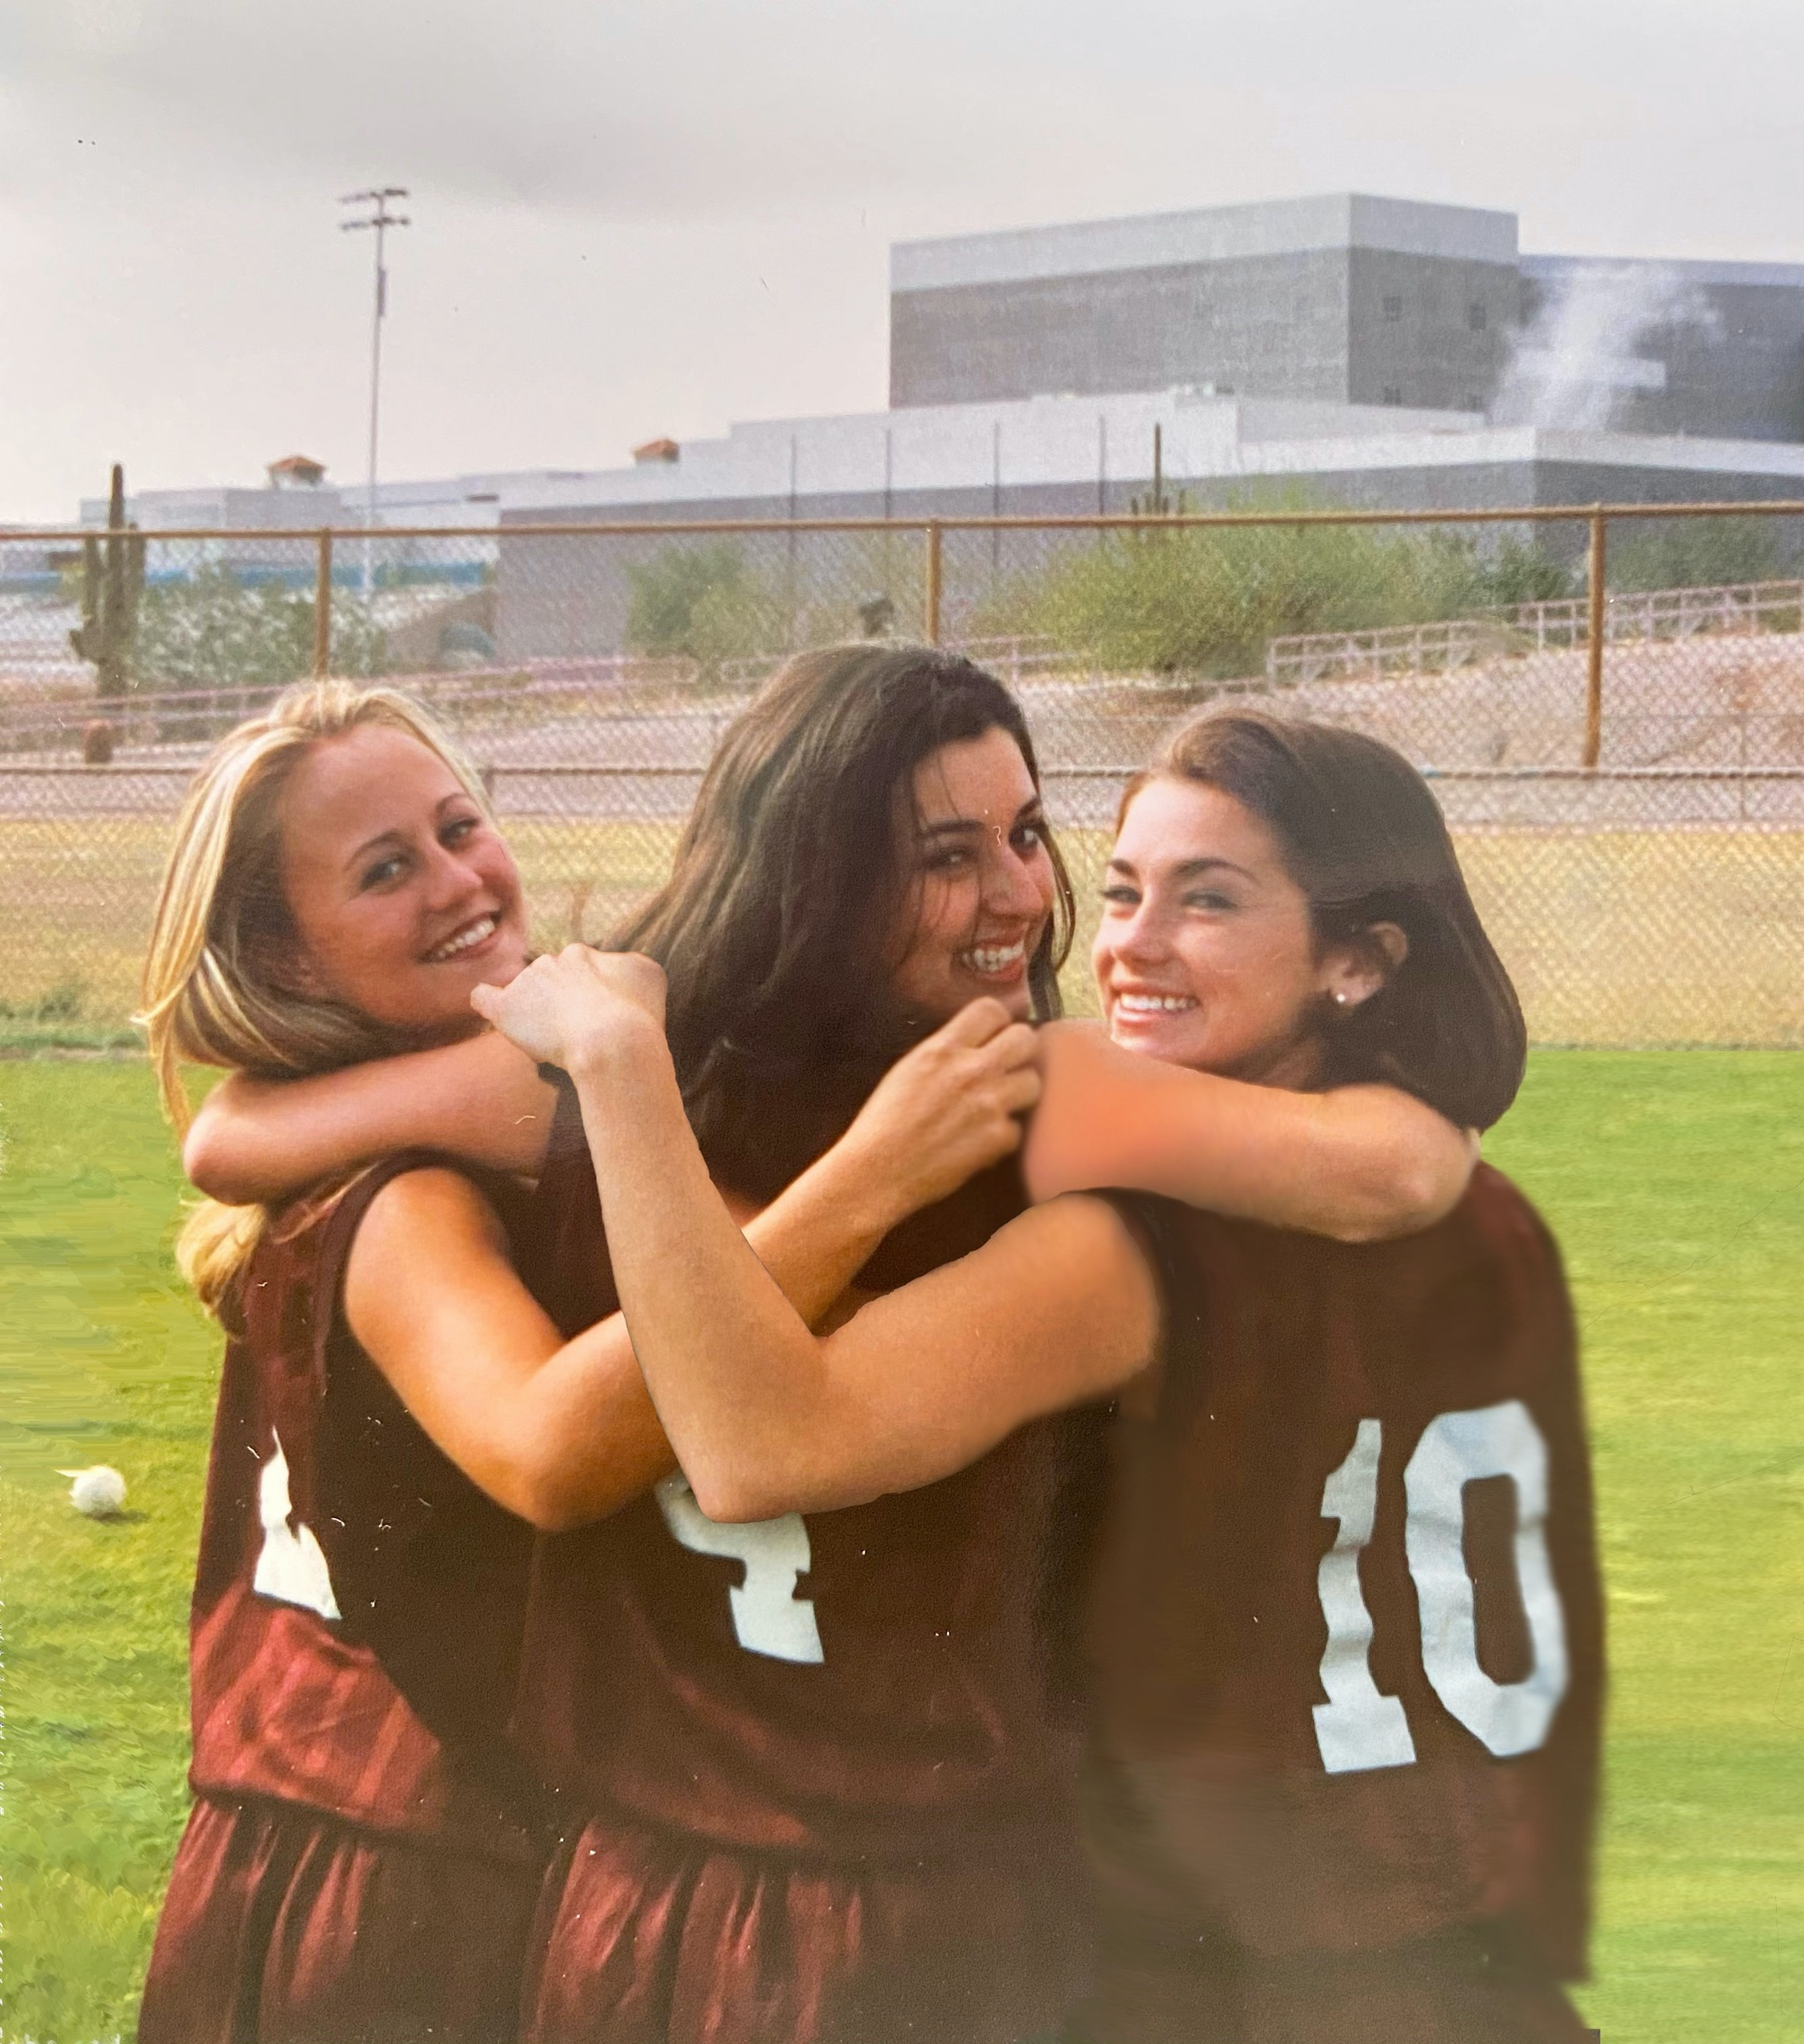 Kristen and her two friends on their old softball team.